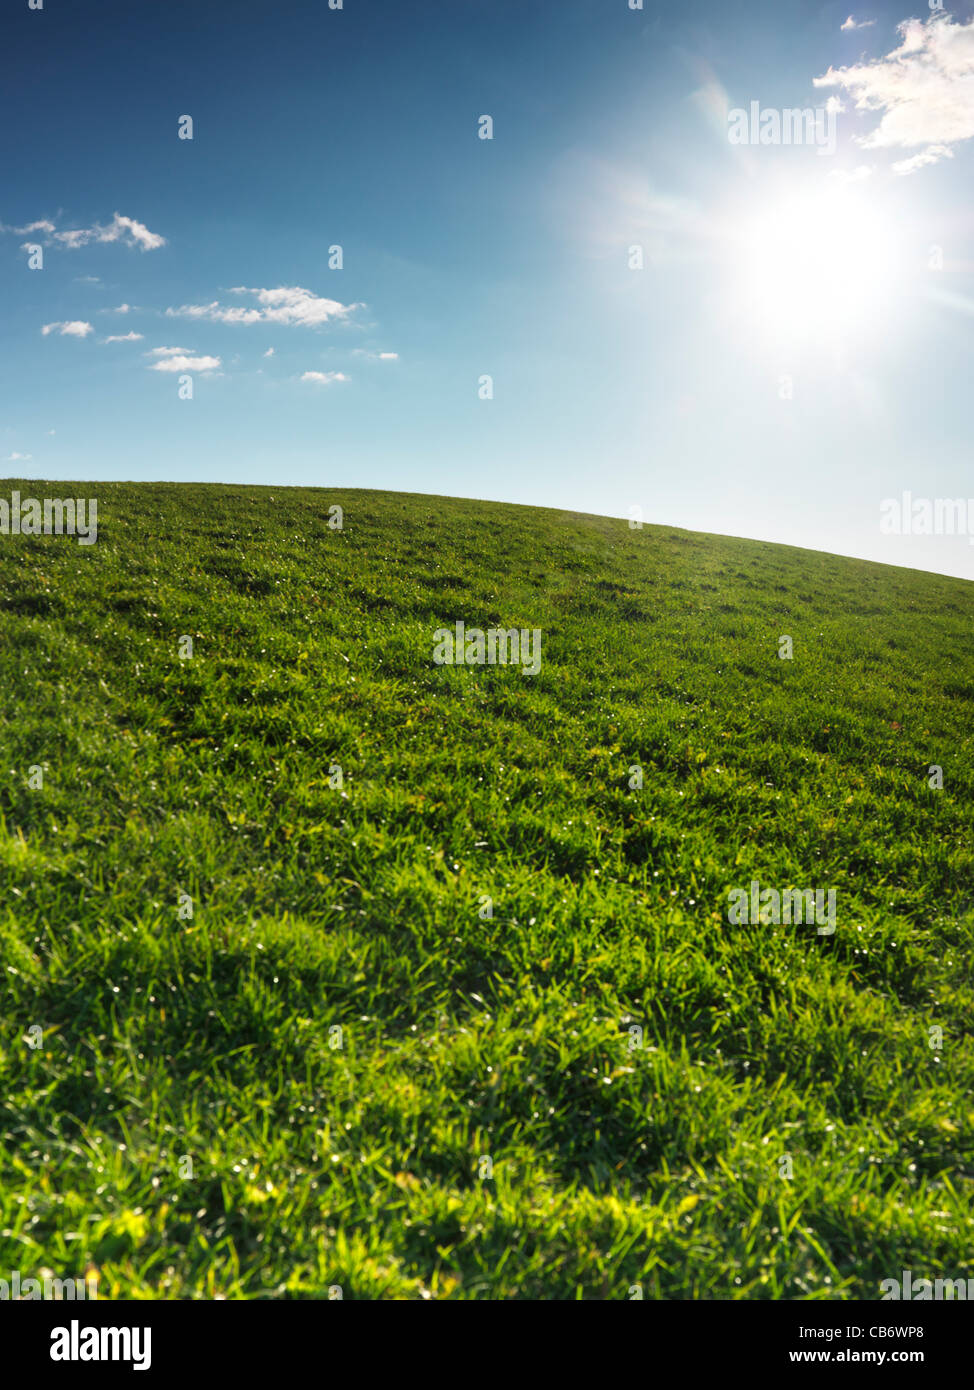 Green grassland landscape under blue clear sky lit with bright sunlight. Nature backdrop background. - Stock Image